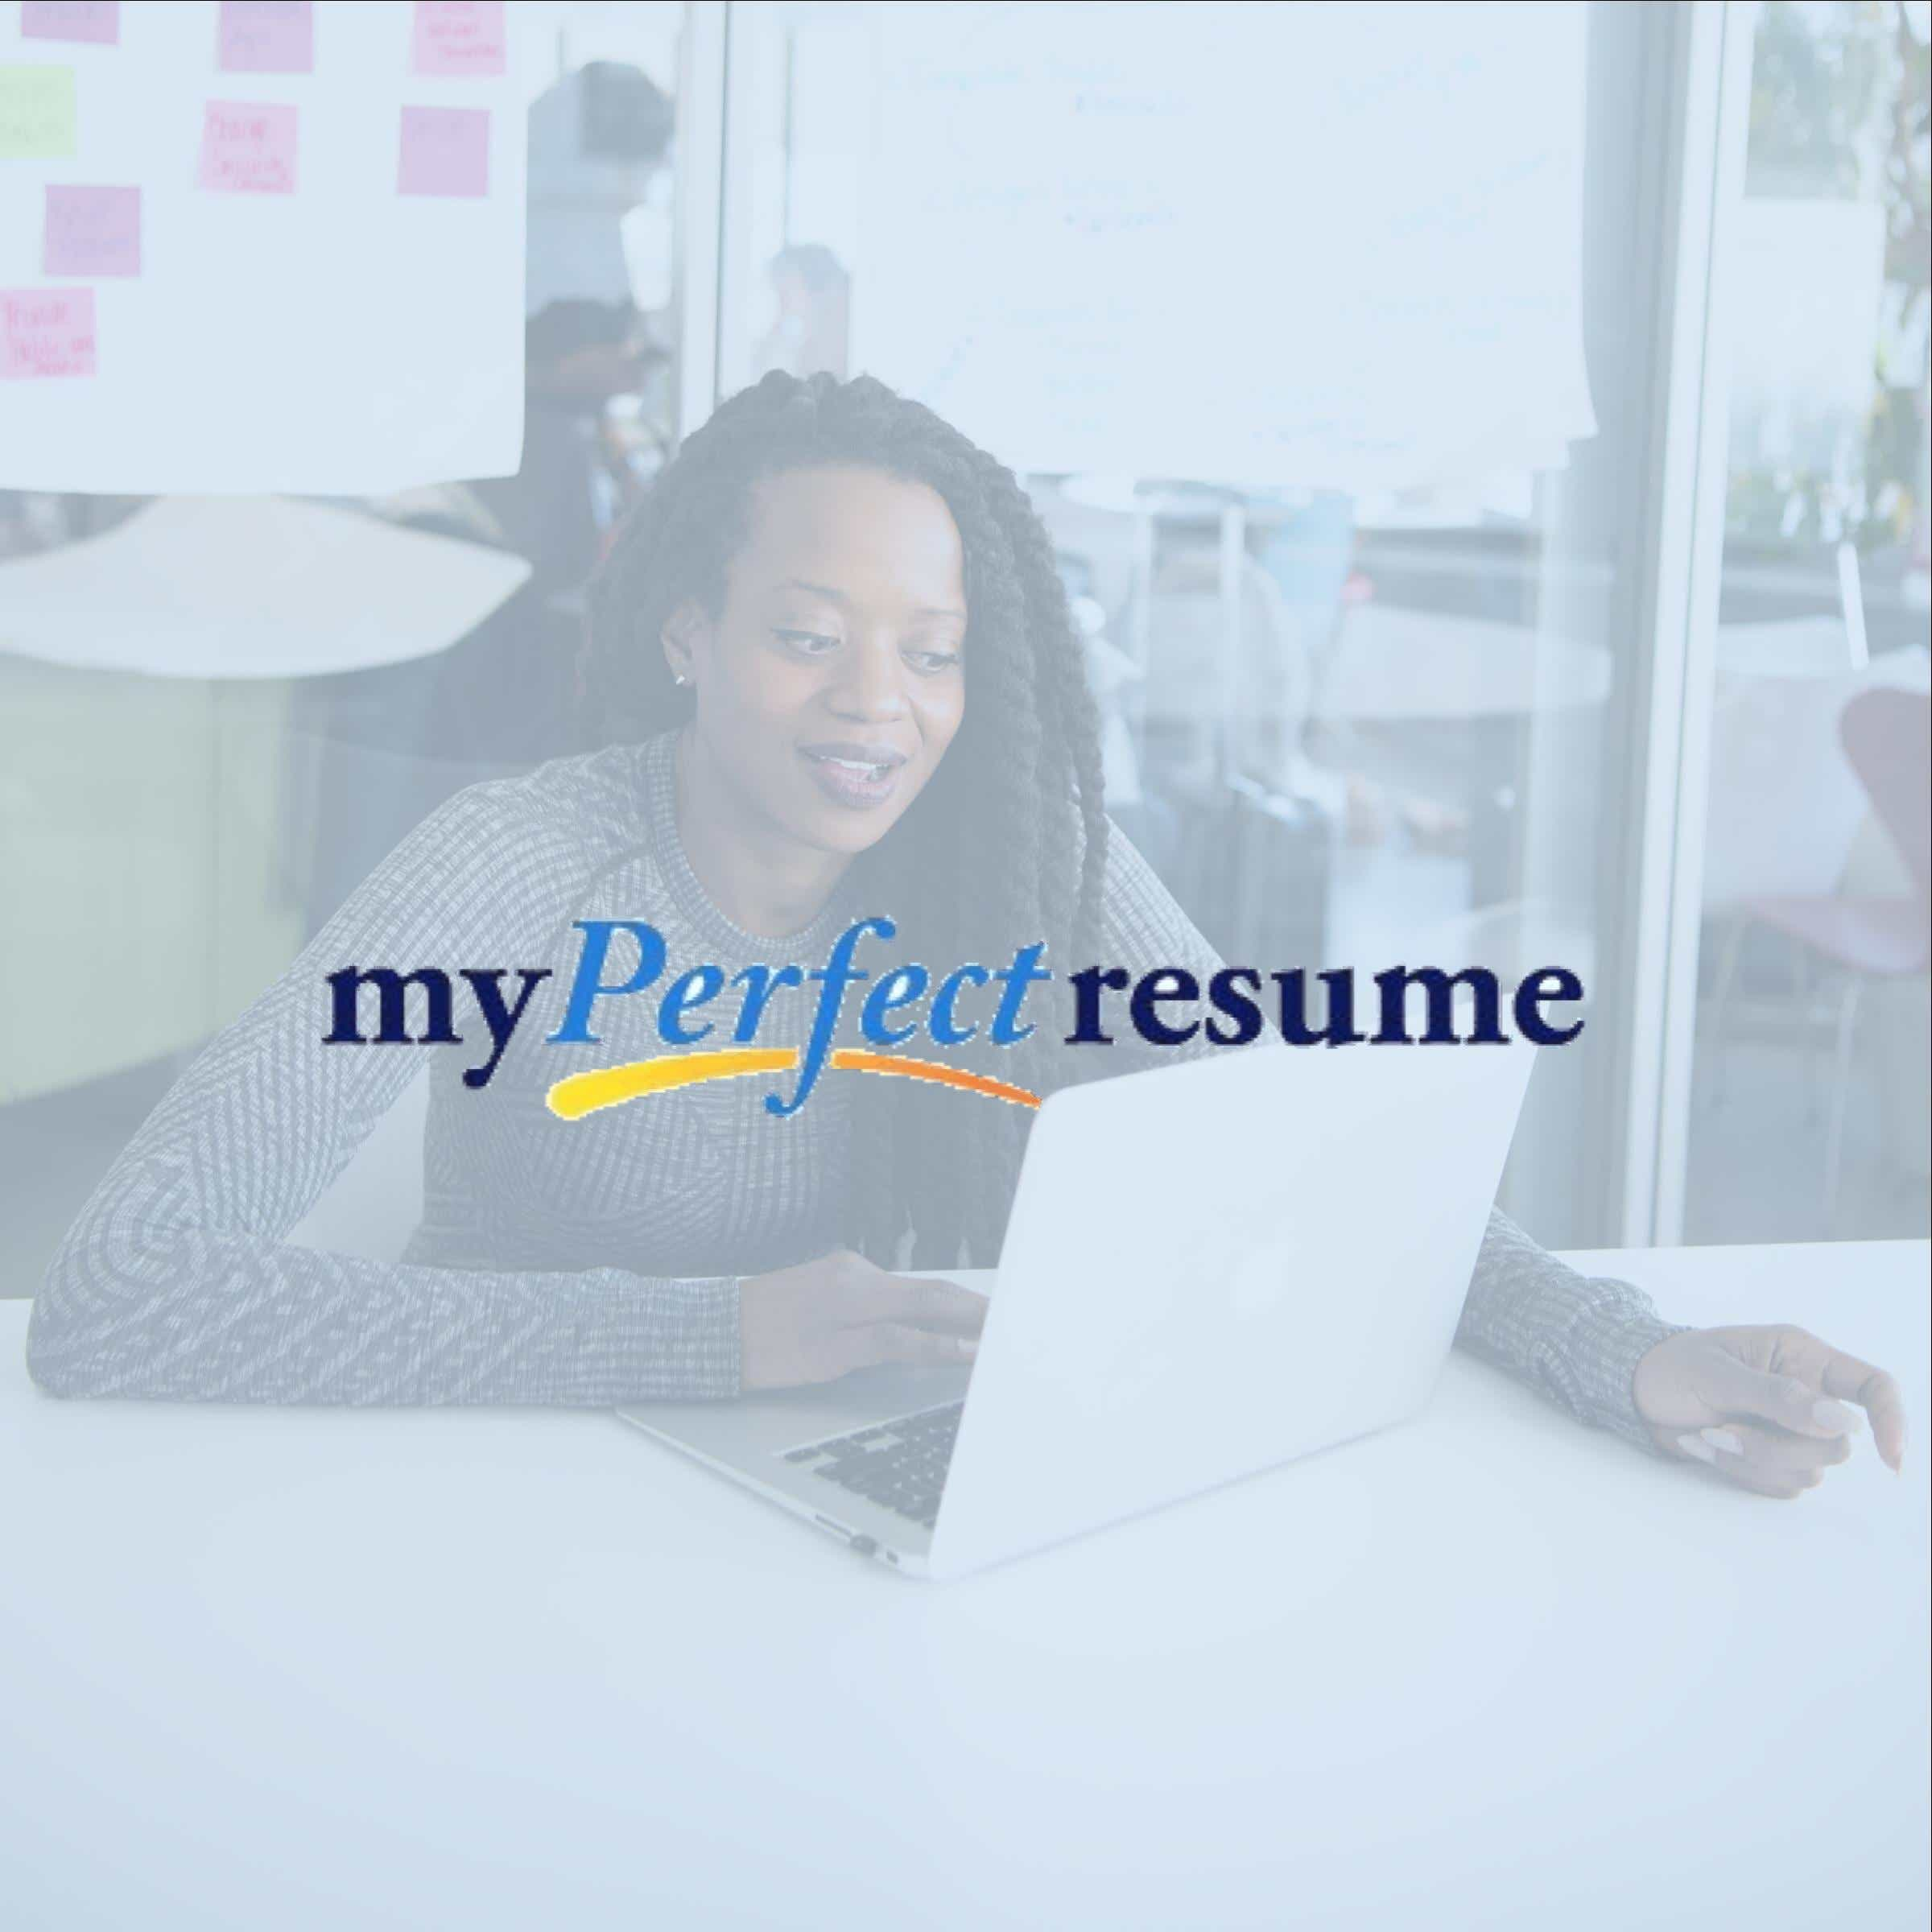 07/07/2021· looking for more resume templates for ms word? Myperfectresume